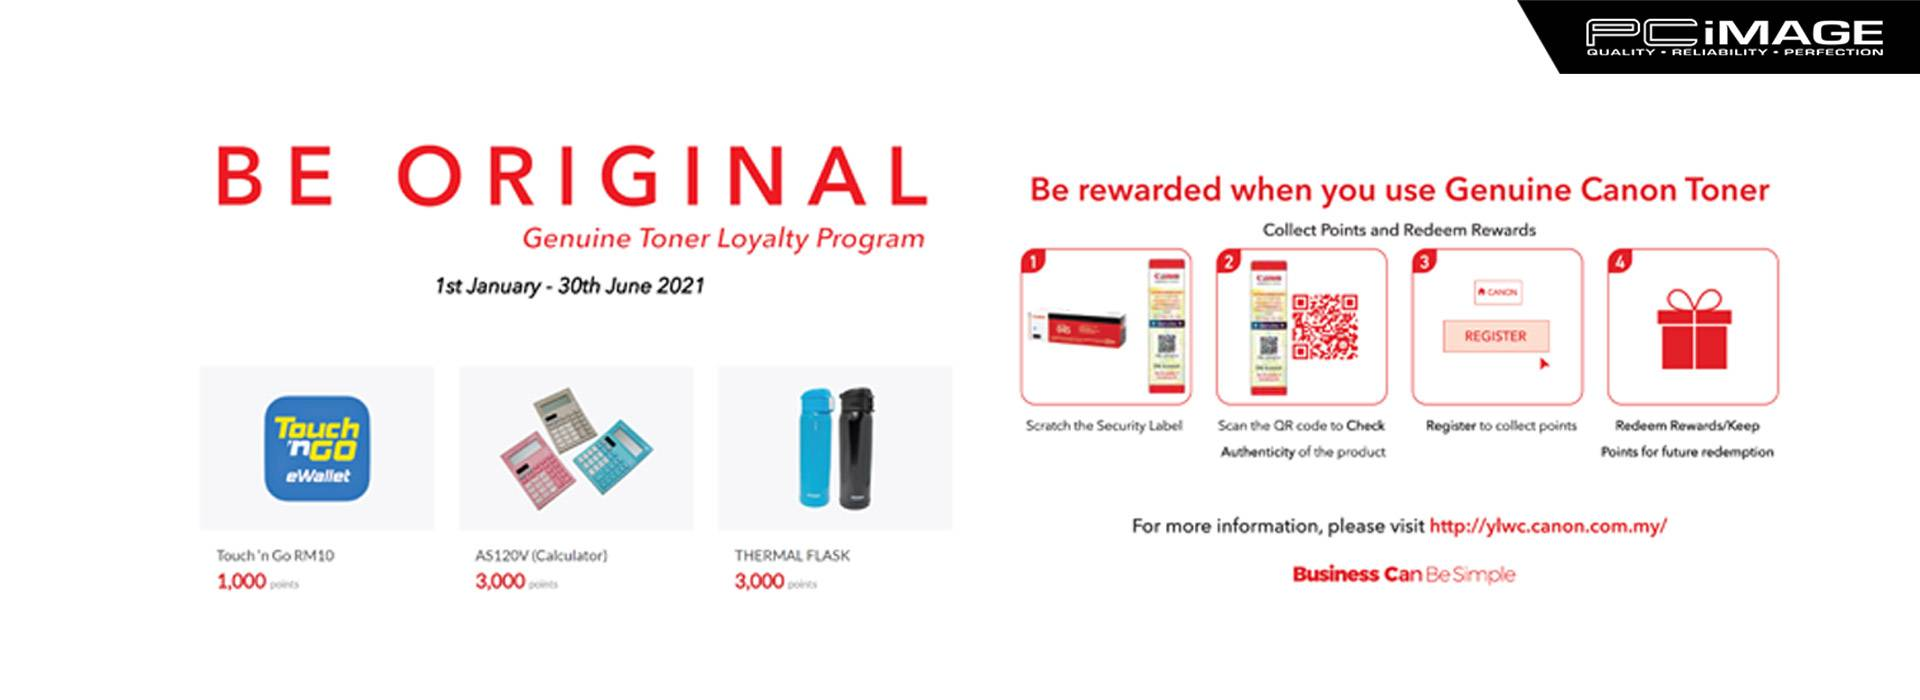 Genuine Toner Loyalty Program 30 June